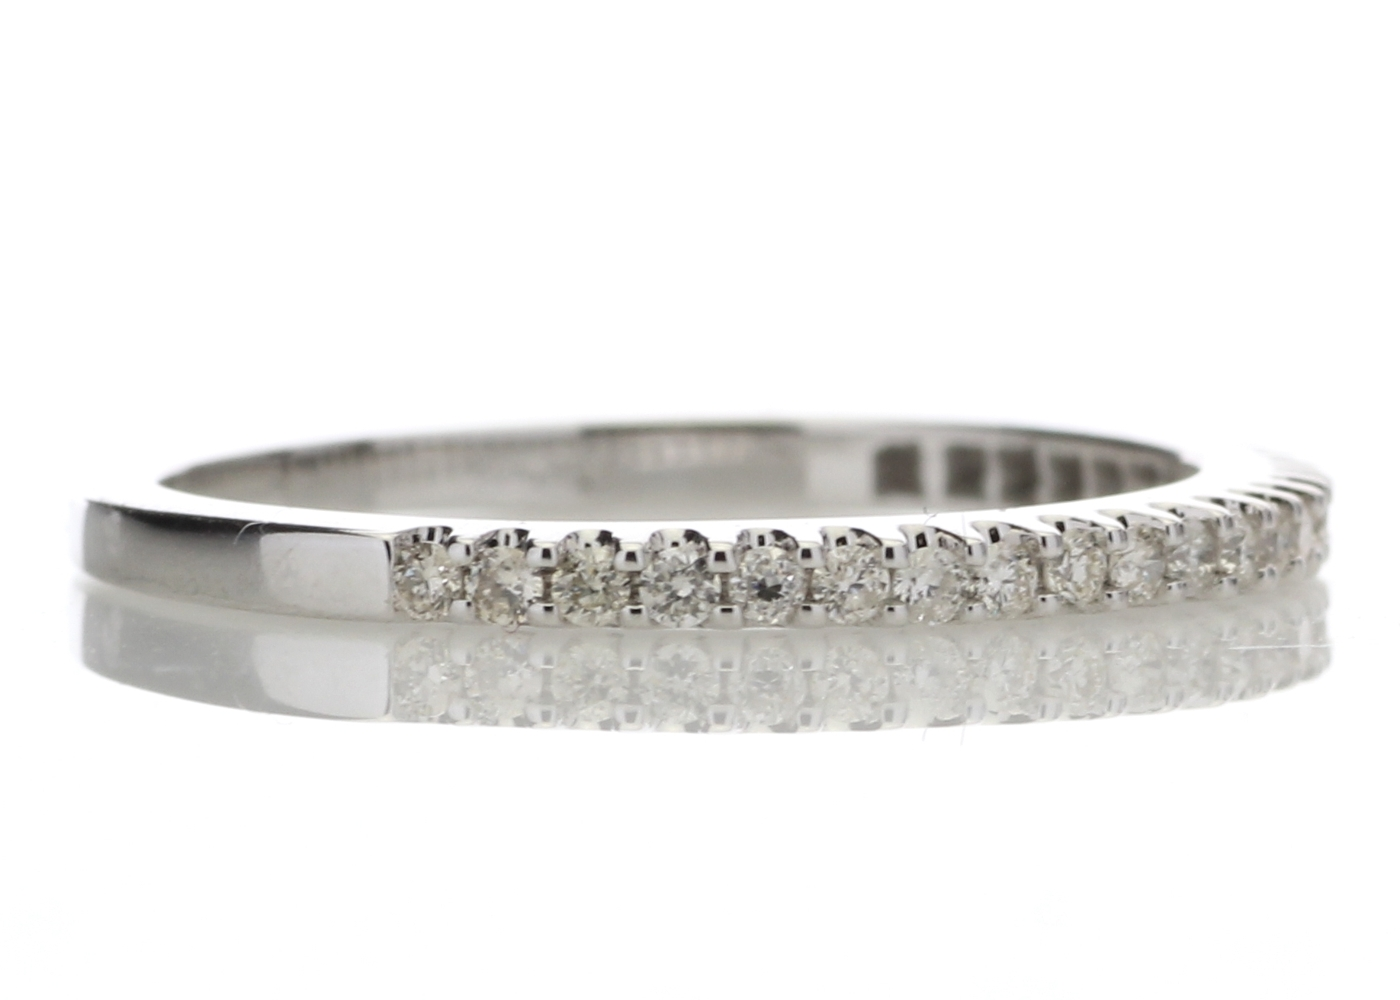 9ct White Gold Diamond Half Eternity Ring 0.25 Carats - Image 4 of 4